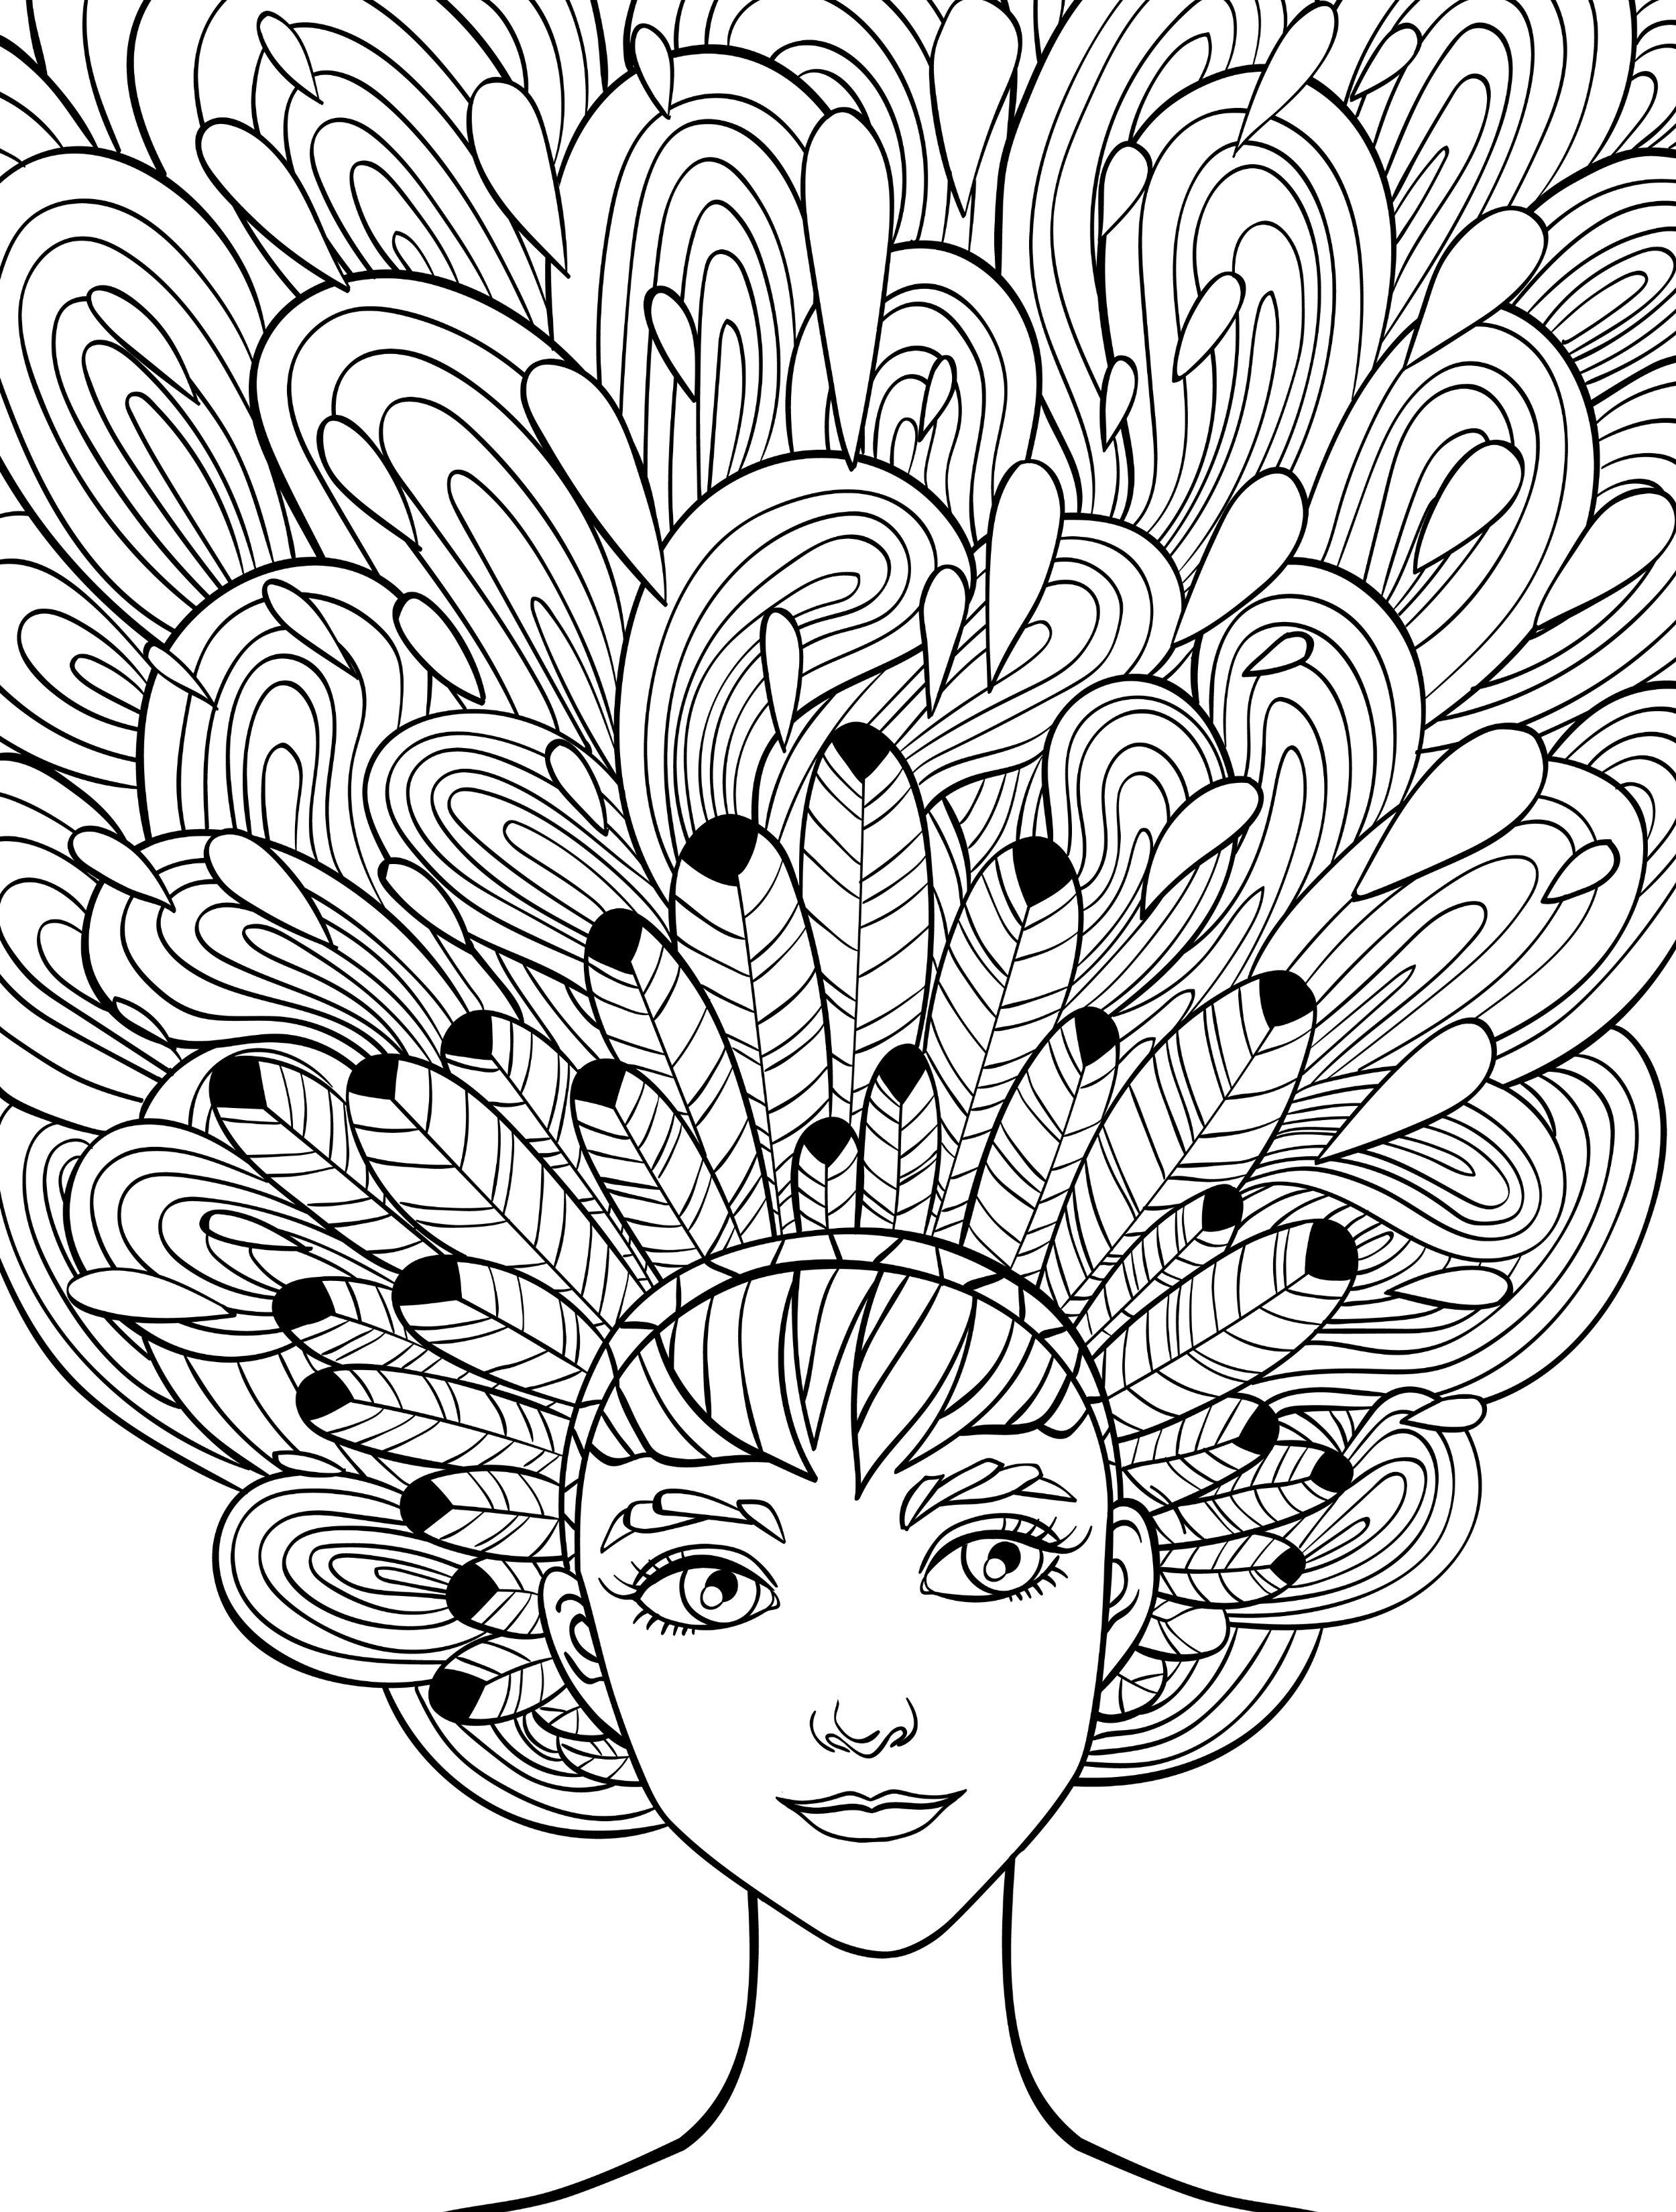 10 Crazy Hair Adult Coloring Pages Davlin Publishing Adultcoloring